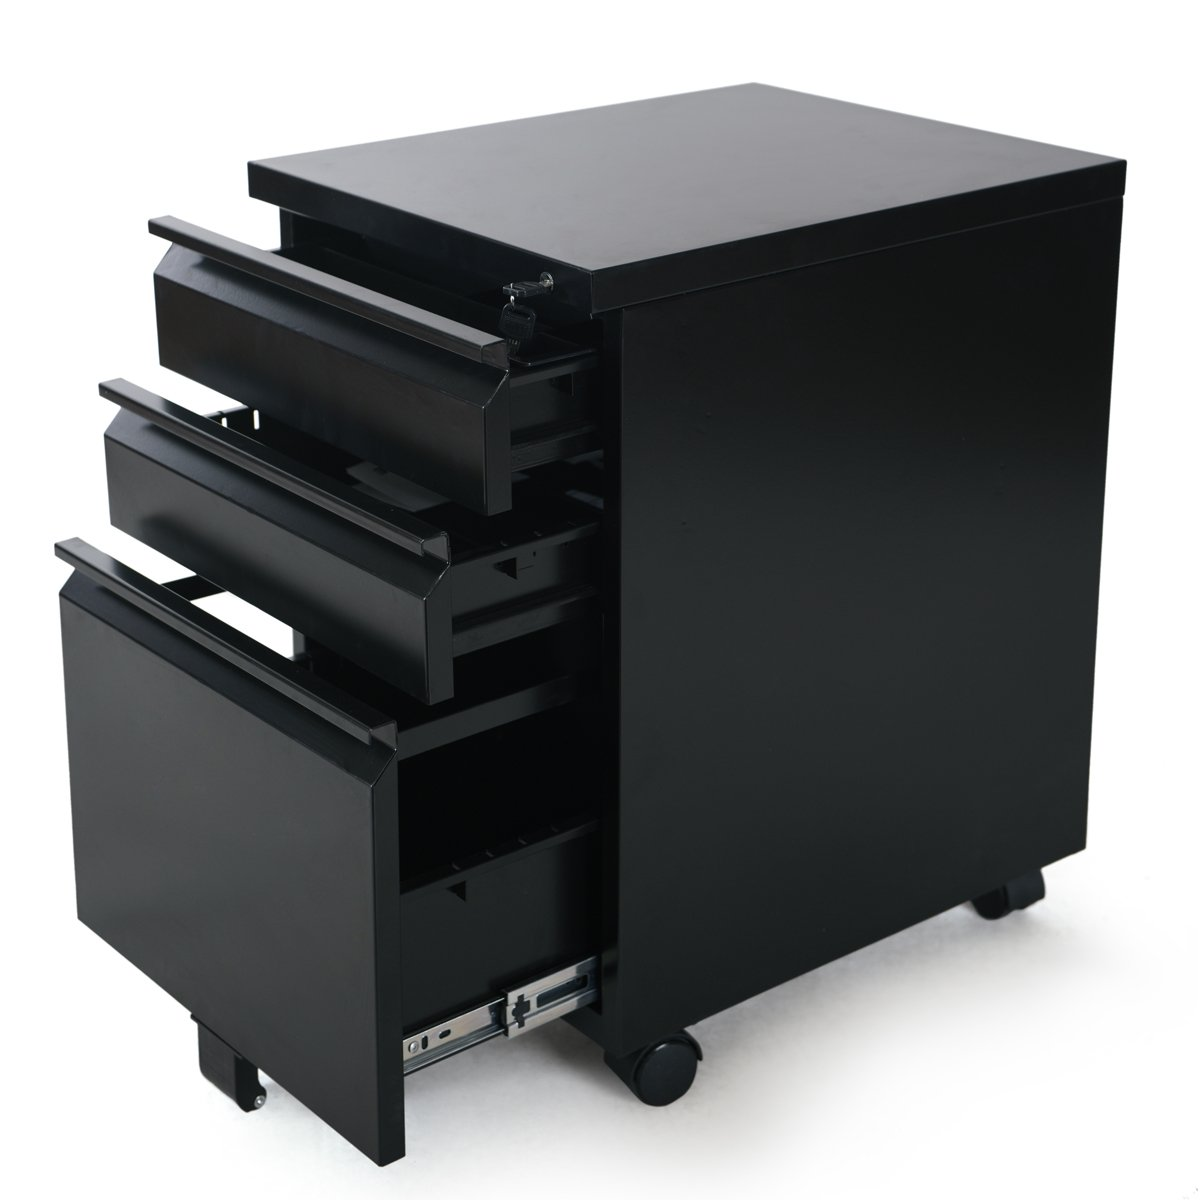 Amazon.com : DEVAISE 3 Drawer Mobile File Cabinet With Lock, Black : Office  Products